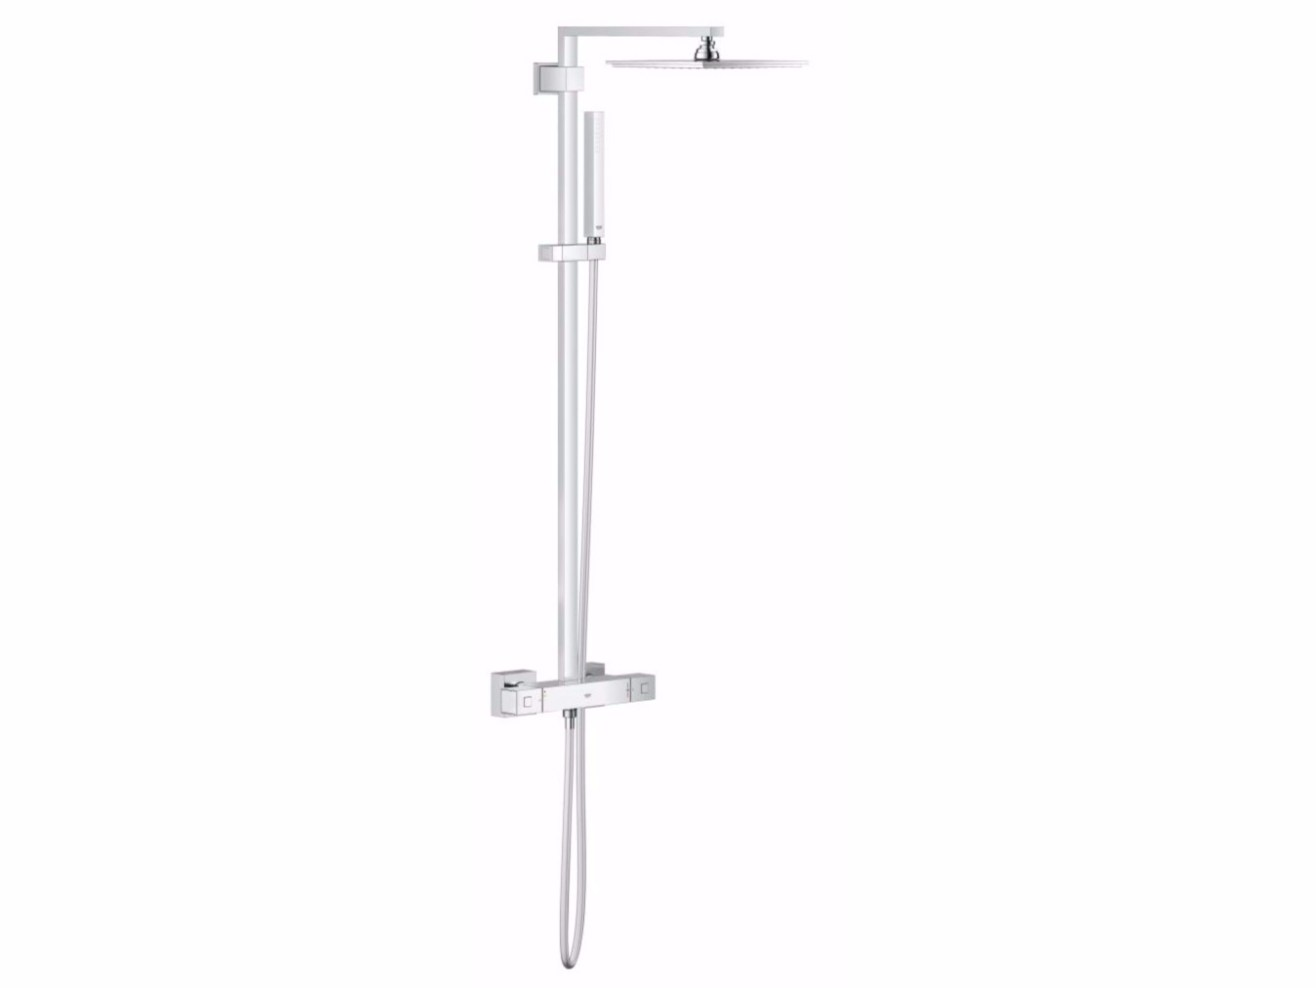 Duschsäule Grohe Tojo Mbel Best With Tojo Mbel Trendy Affordable Free Tv Schrank